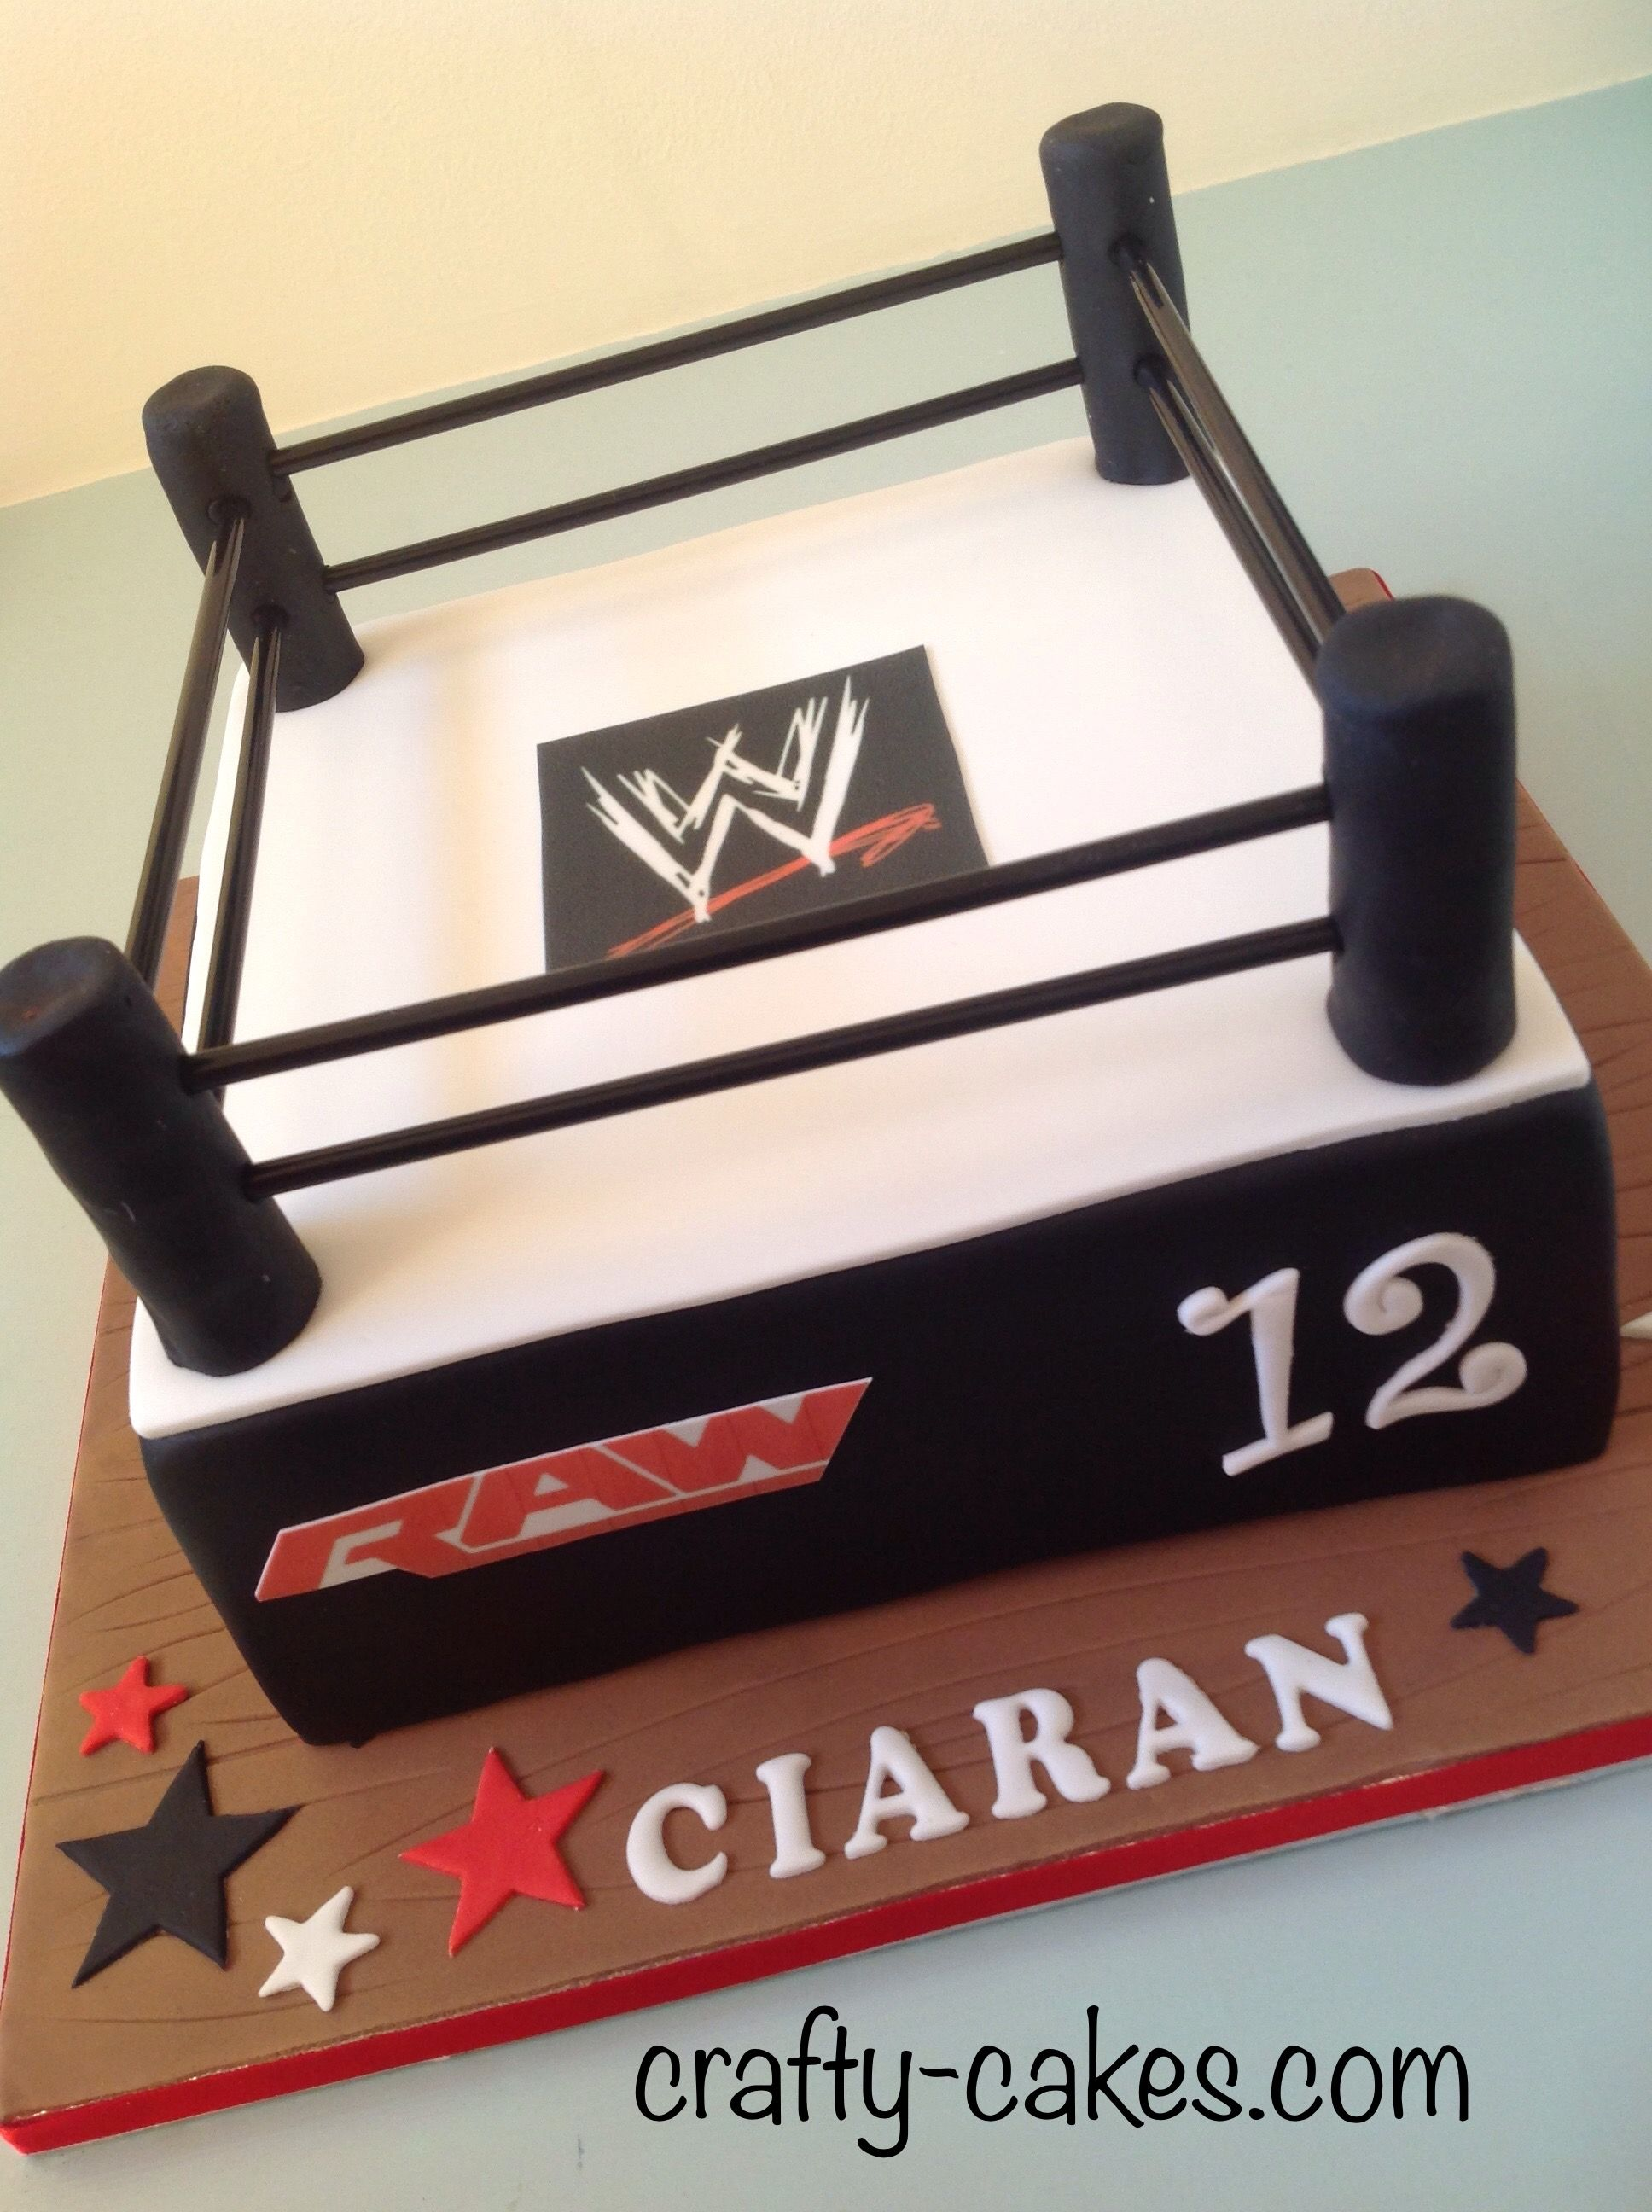 Tremendous Wwe Wrestling Ring Cake By Crafty Cakes Com Wwe Birthday Cakes Funny Birthday Cards Online Alyptdamsfinfo